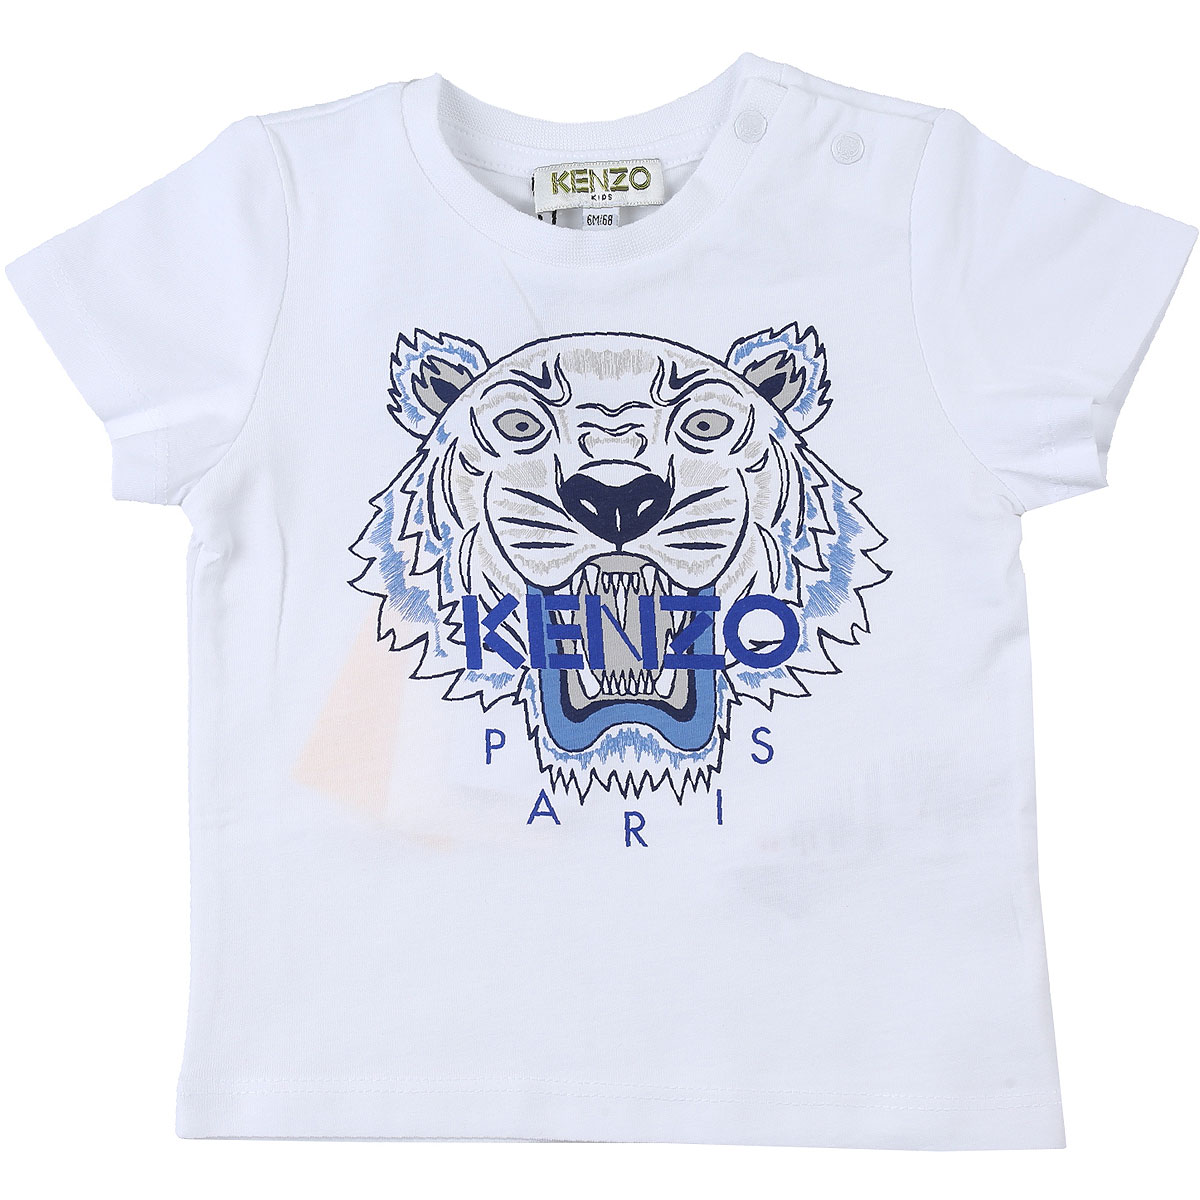 Kenzo Baby T-Shirt for Boys On Sale, White, Cotton, 2019, 12 M 18M 6M 9M